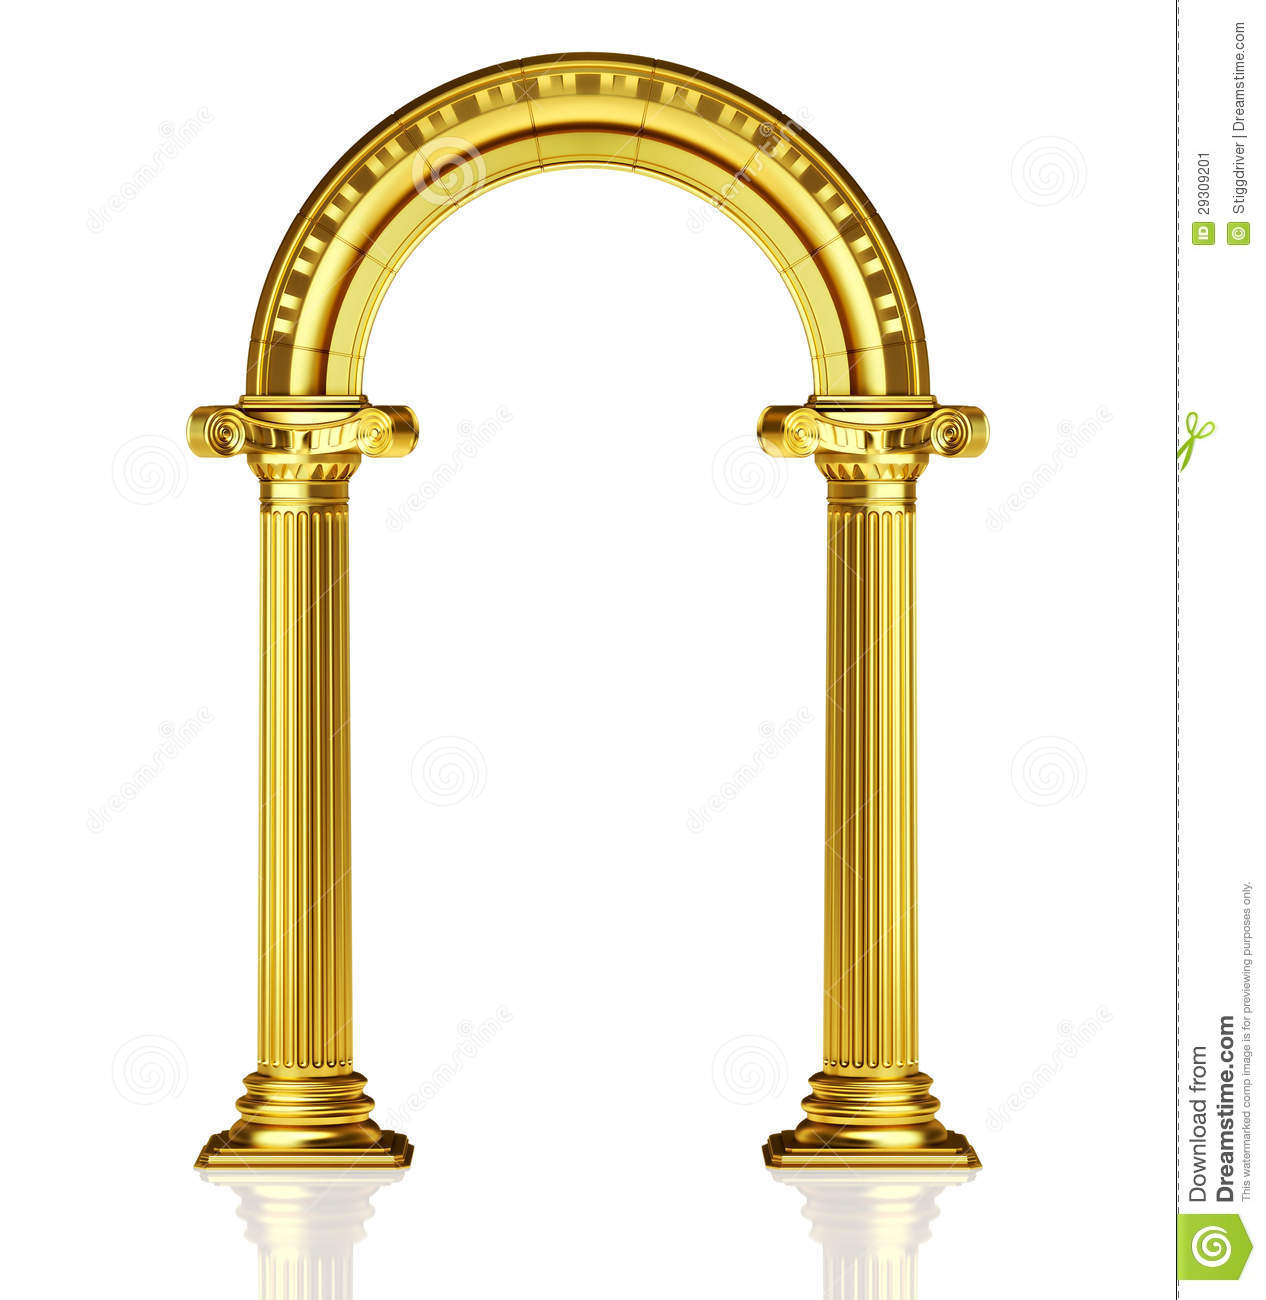 Gold arch stock illustration image of white culture for Architect 3d gold